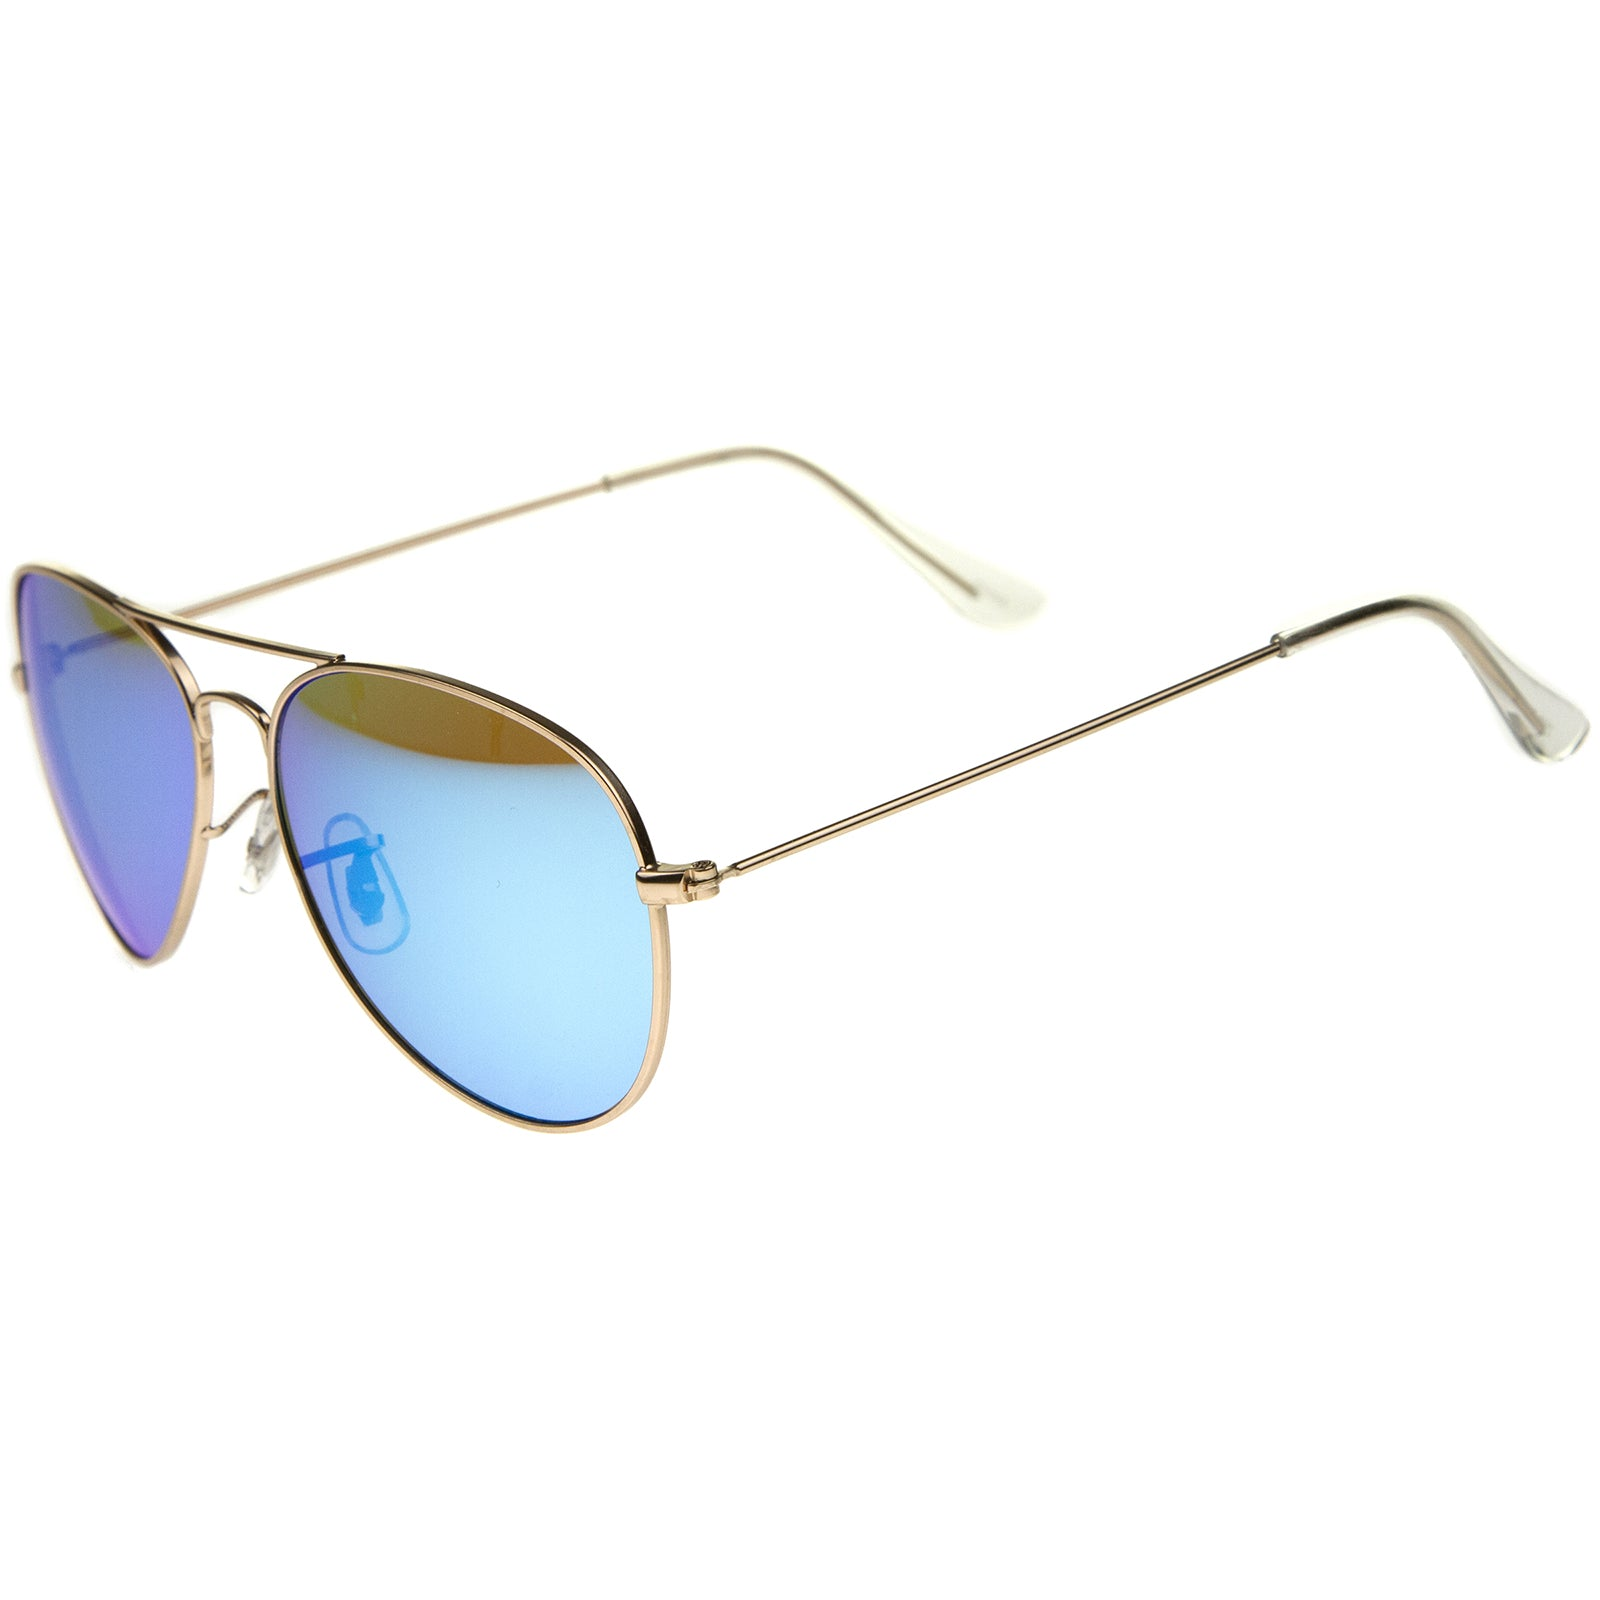 Premium Nickel Plated Frame Multi-Coated Mirror Lens Aviator Sunglasses 59mm - sunglass.la - 3